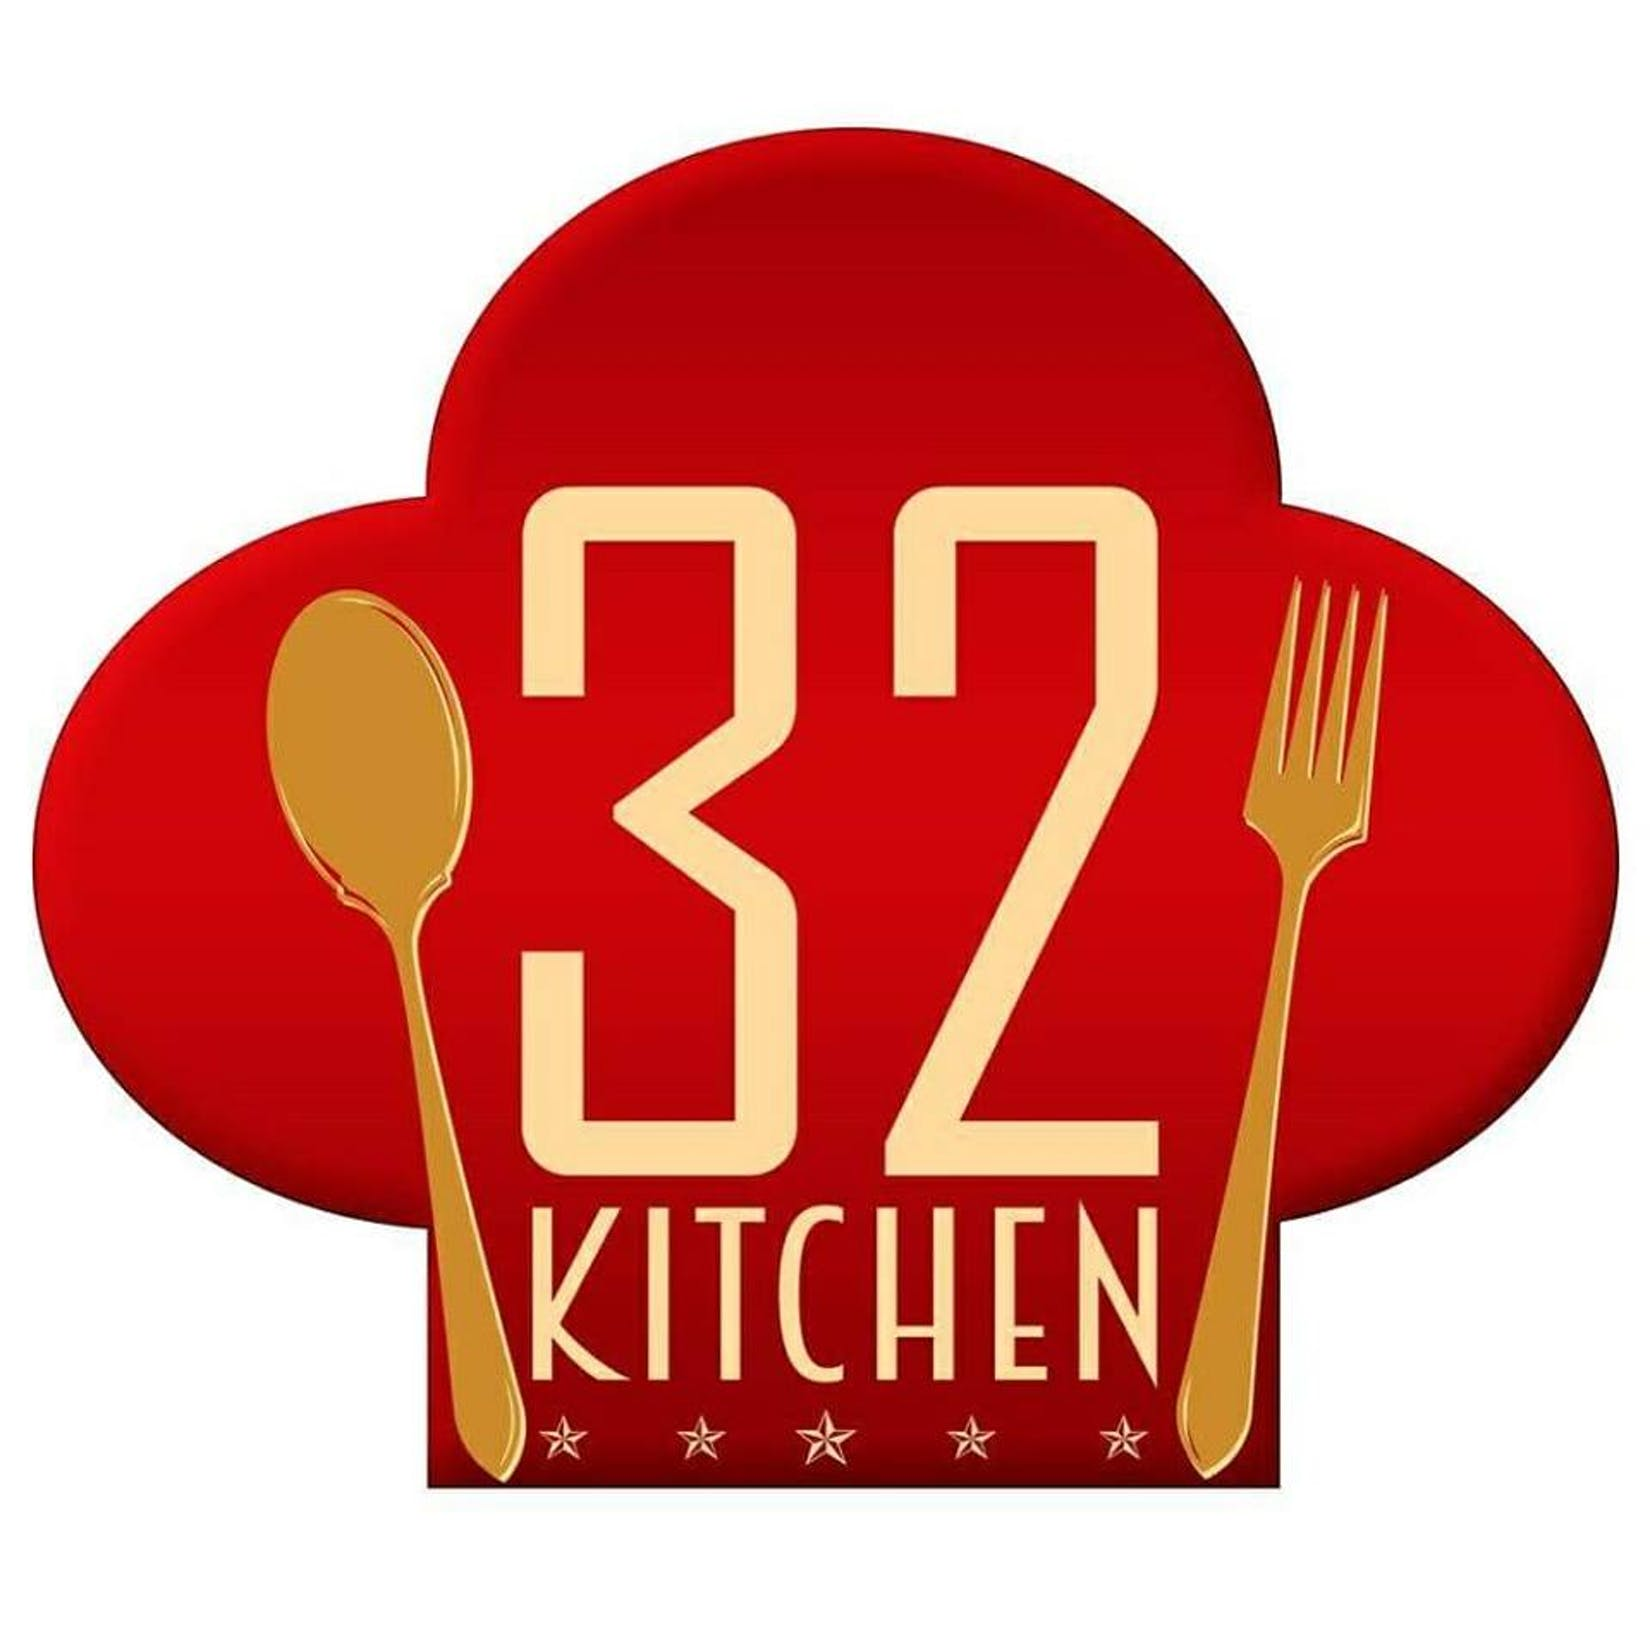 32 Kitchen | yathar